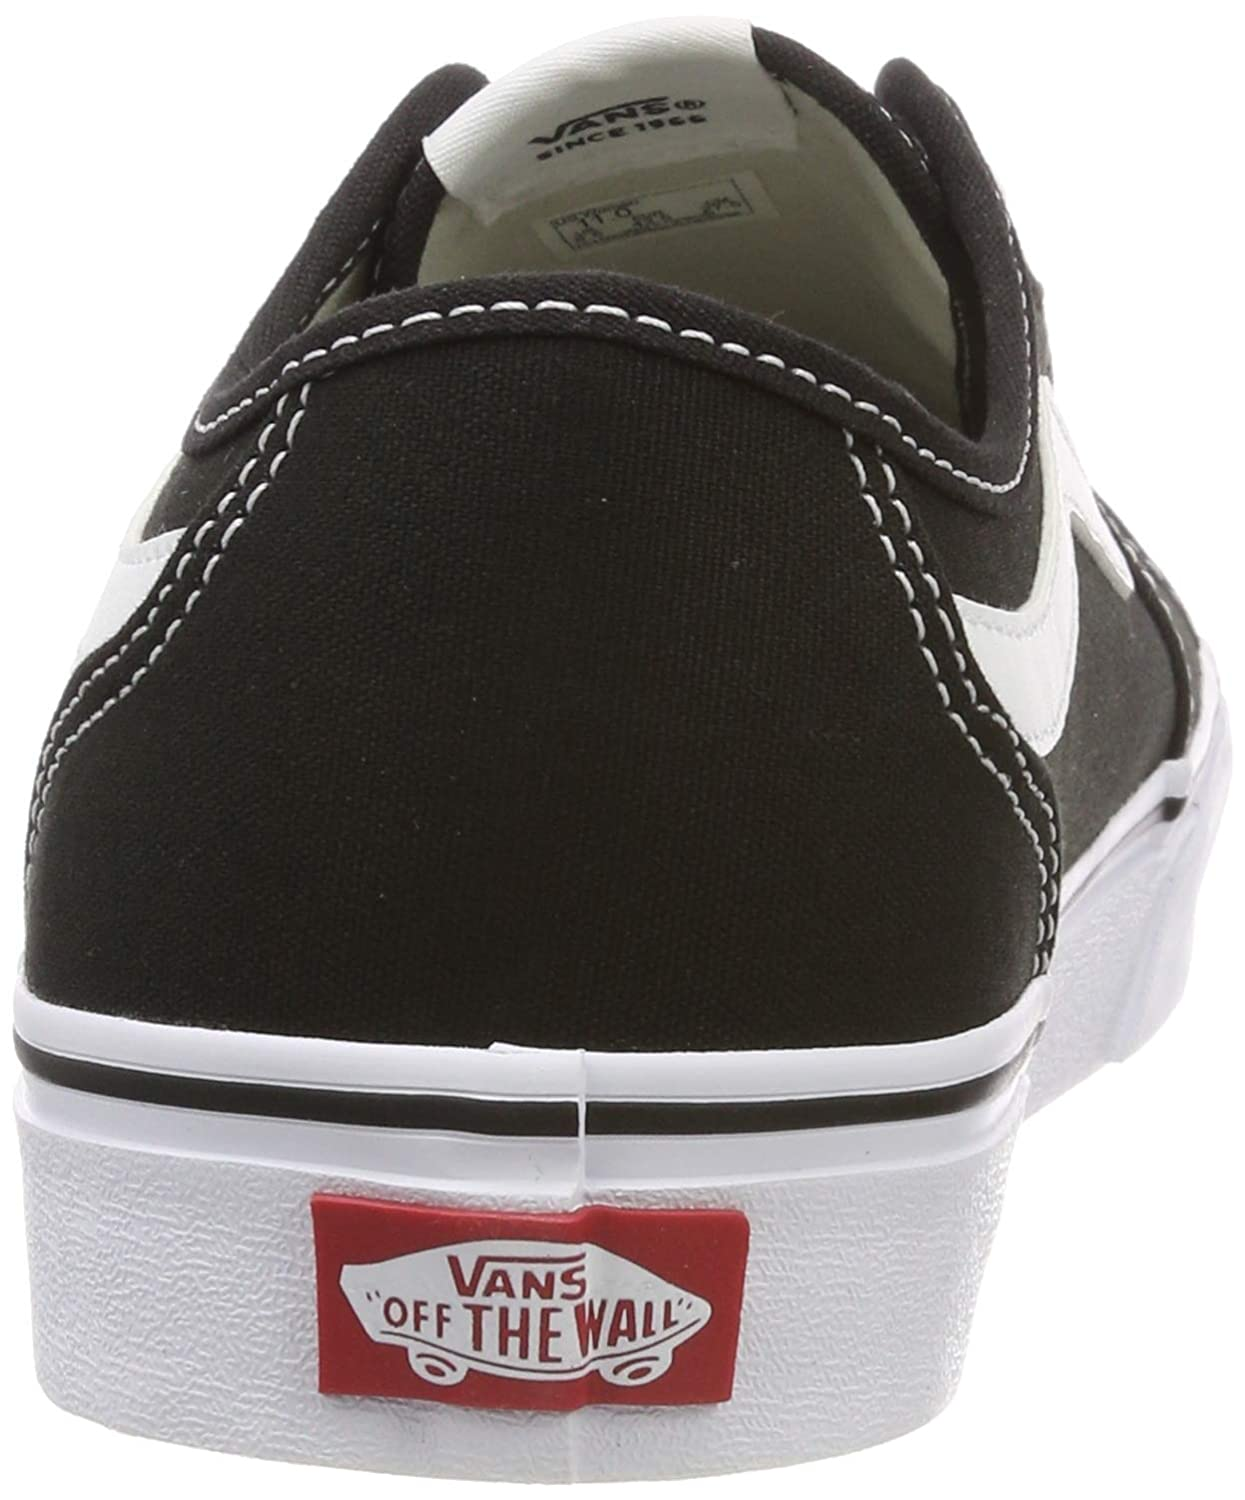 c43c2b9ea4e7bf Vans Women s Filmore Decon Trainers  Amazon.co.uk  Shoes   Bags